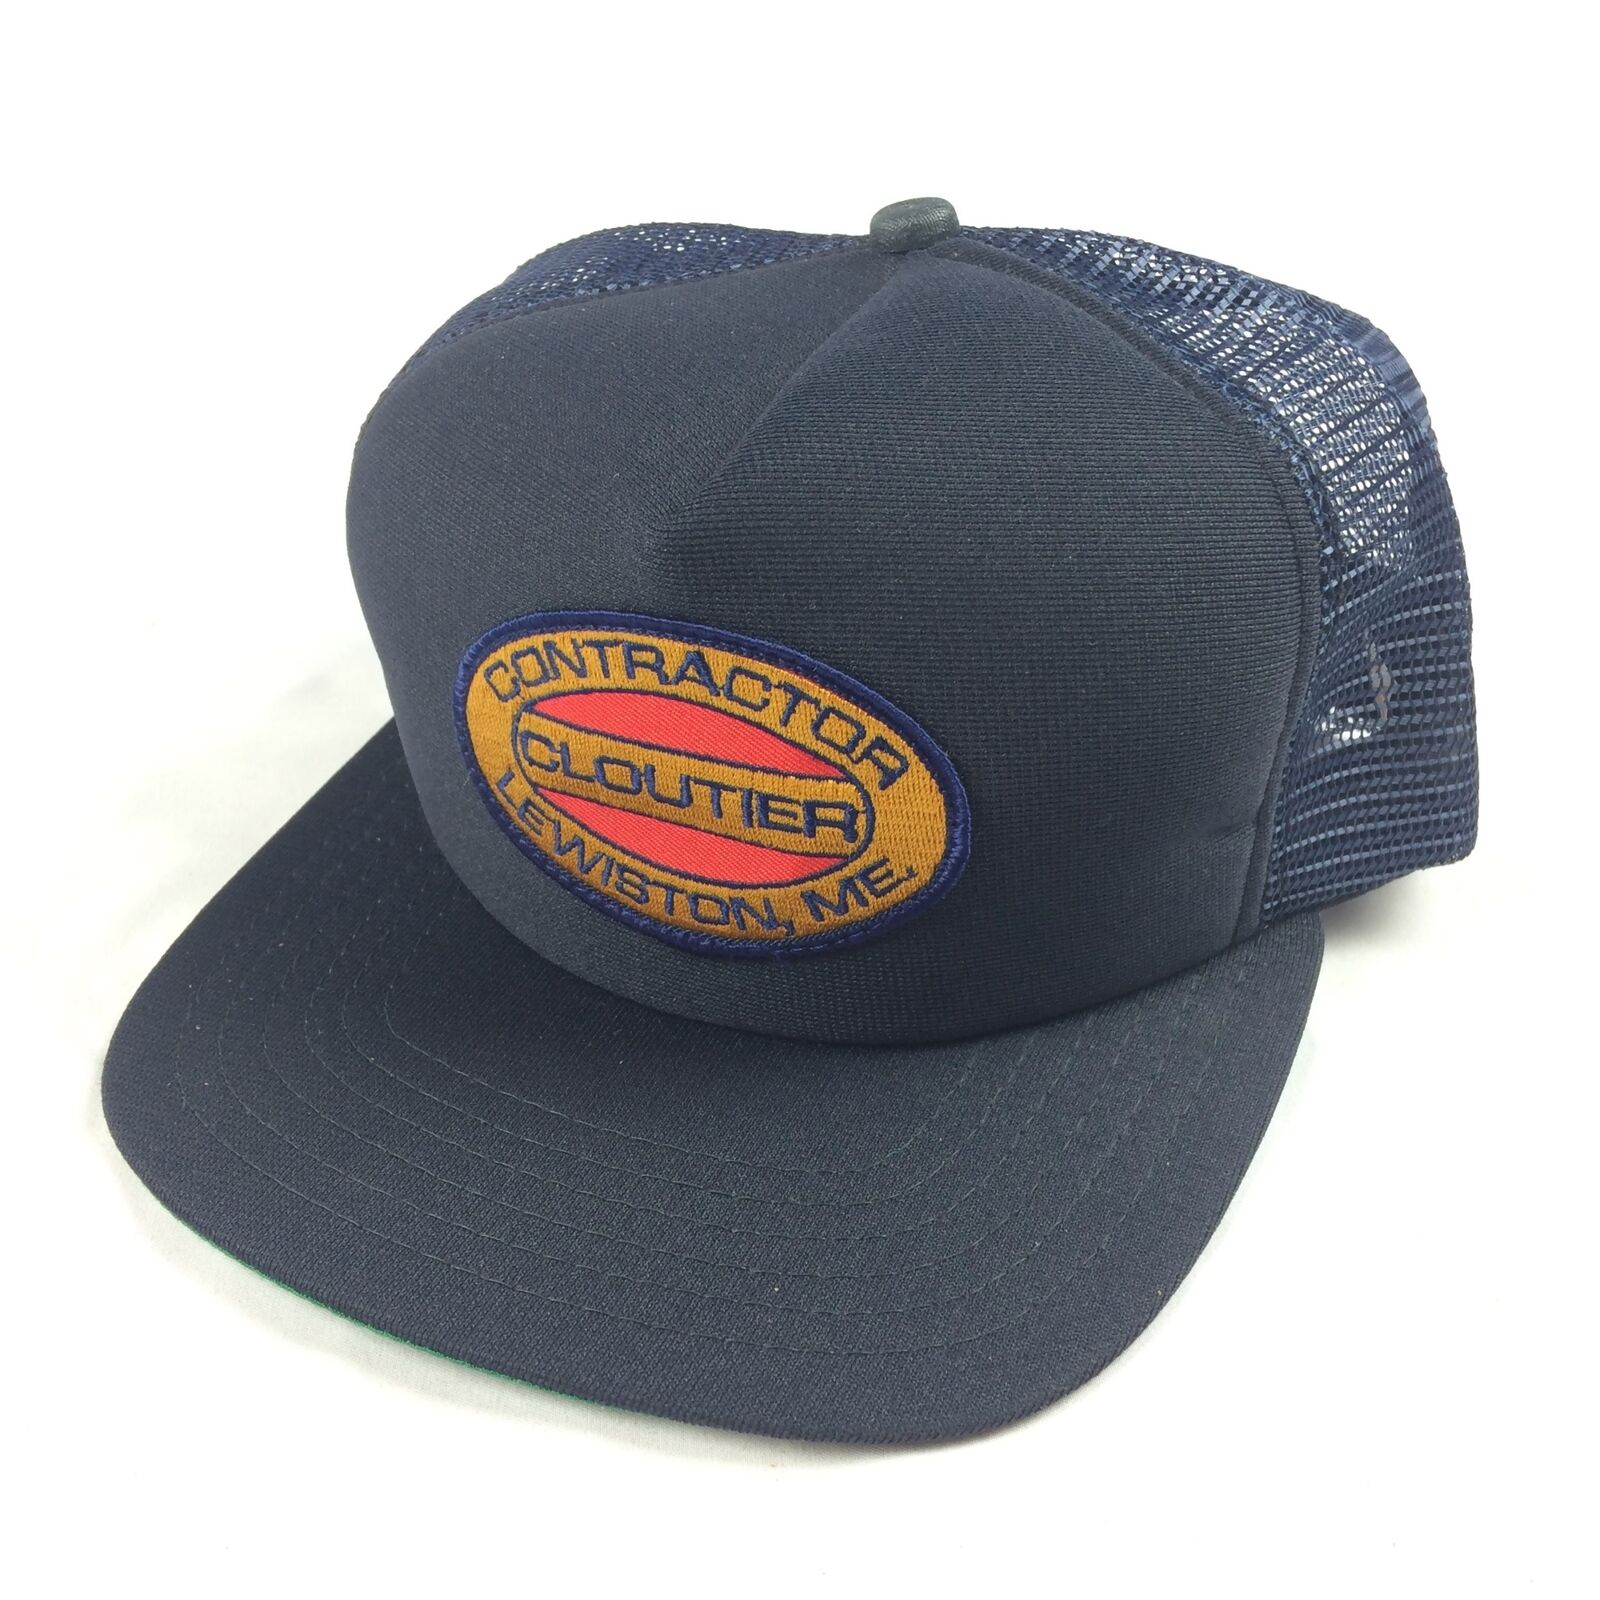 VTG Cloutier NEW Contractor Patch Hat Cap Snapback Made USA NEW Cloutier ERA Lewiston Maine 3caadb